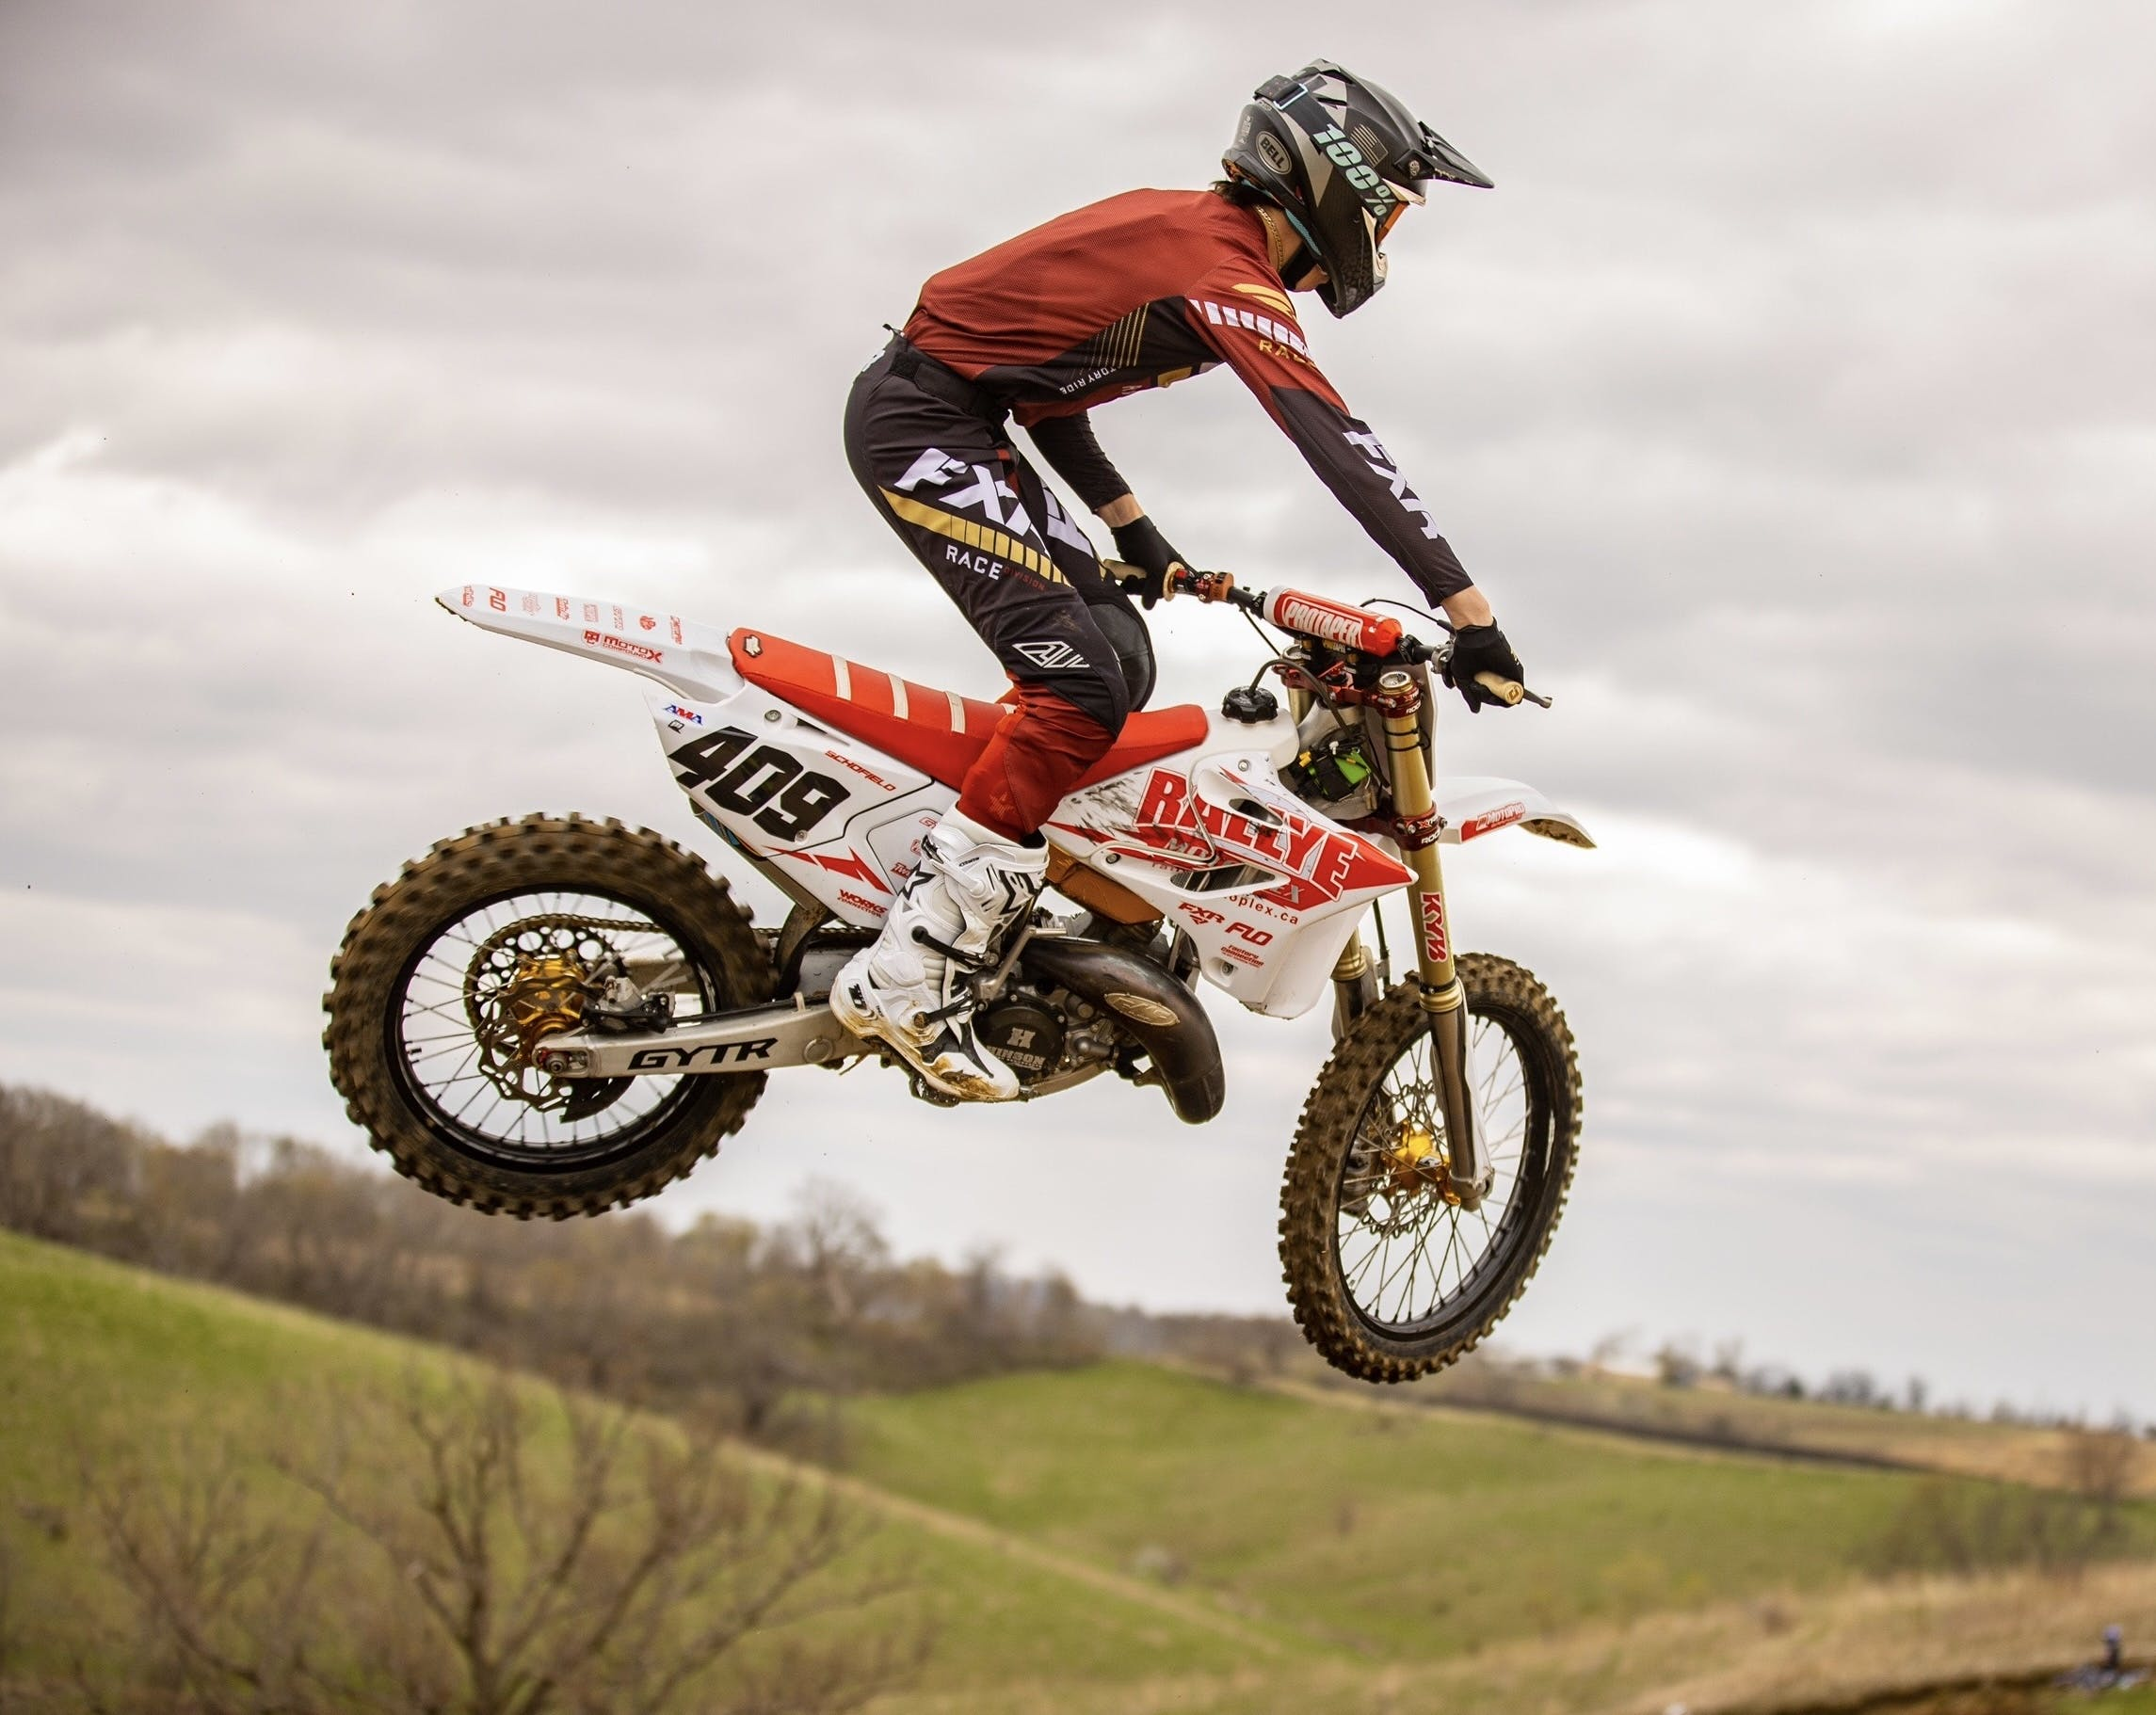 Fifteen-year-old motocross rider Brennan Schofield of Falmouth is vying to become the first Nova Scotian to compete at the annual Monster Energy AMA national championship, the largest amateur motocross event in North America. - Reed Photography